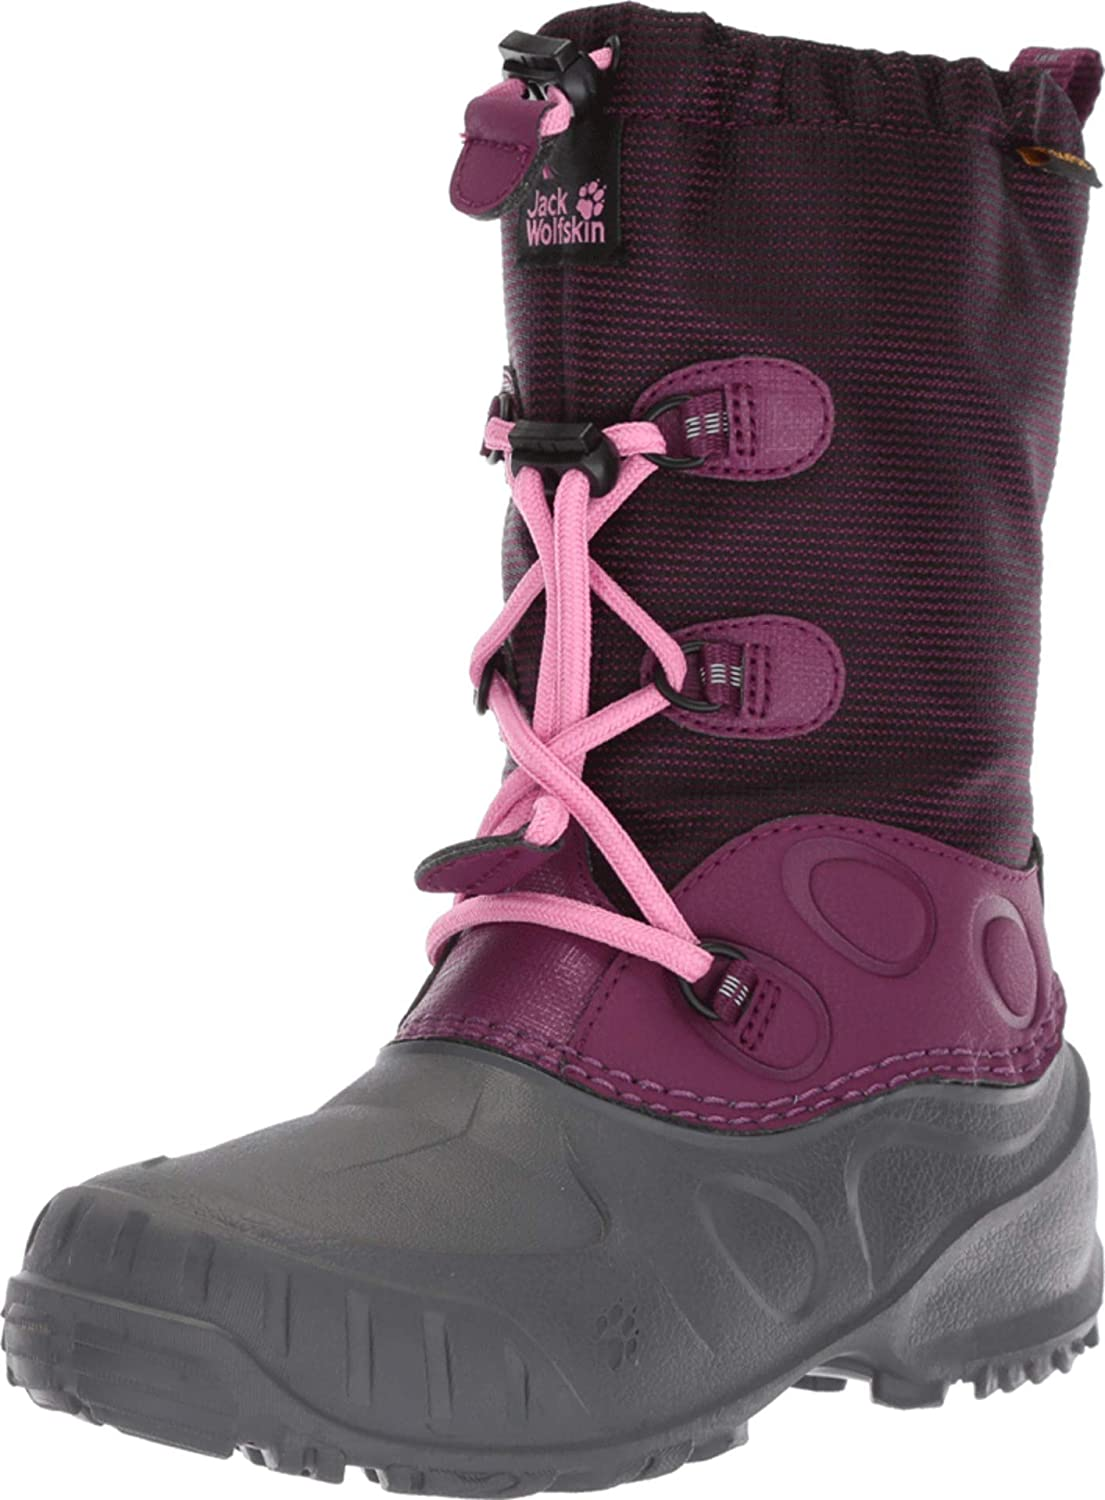 Jack Wolfskin Iceland Texapore High Kid's Waterproof-4°f Insulated Snow Boot